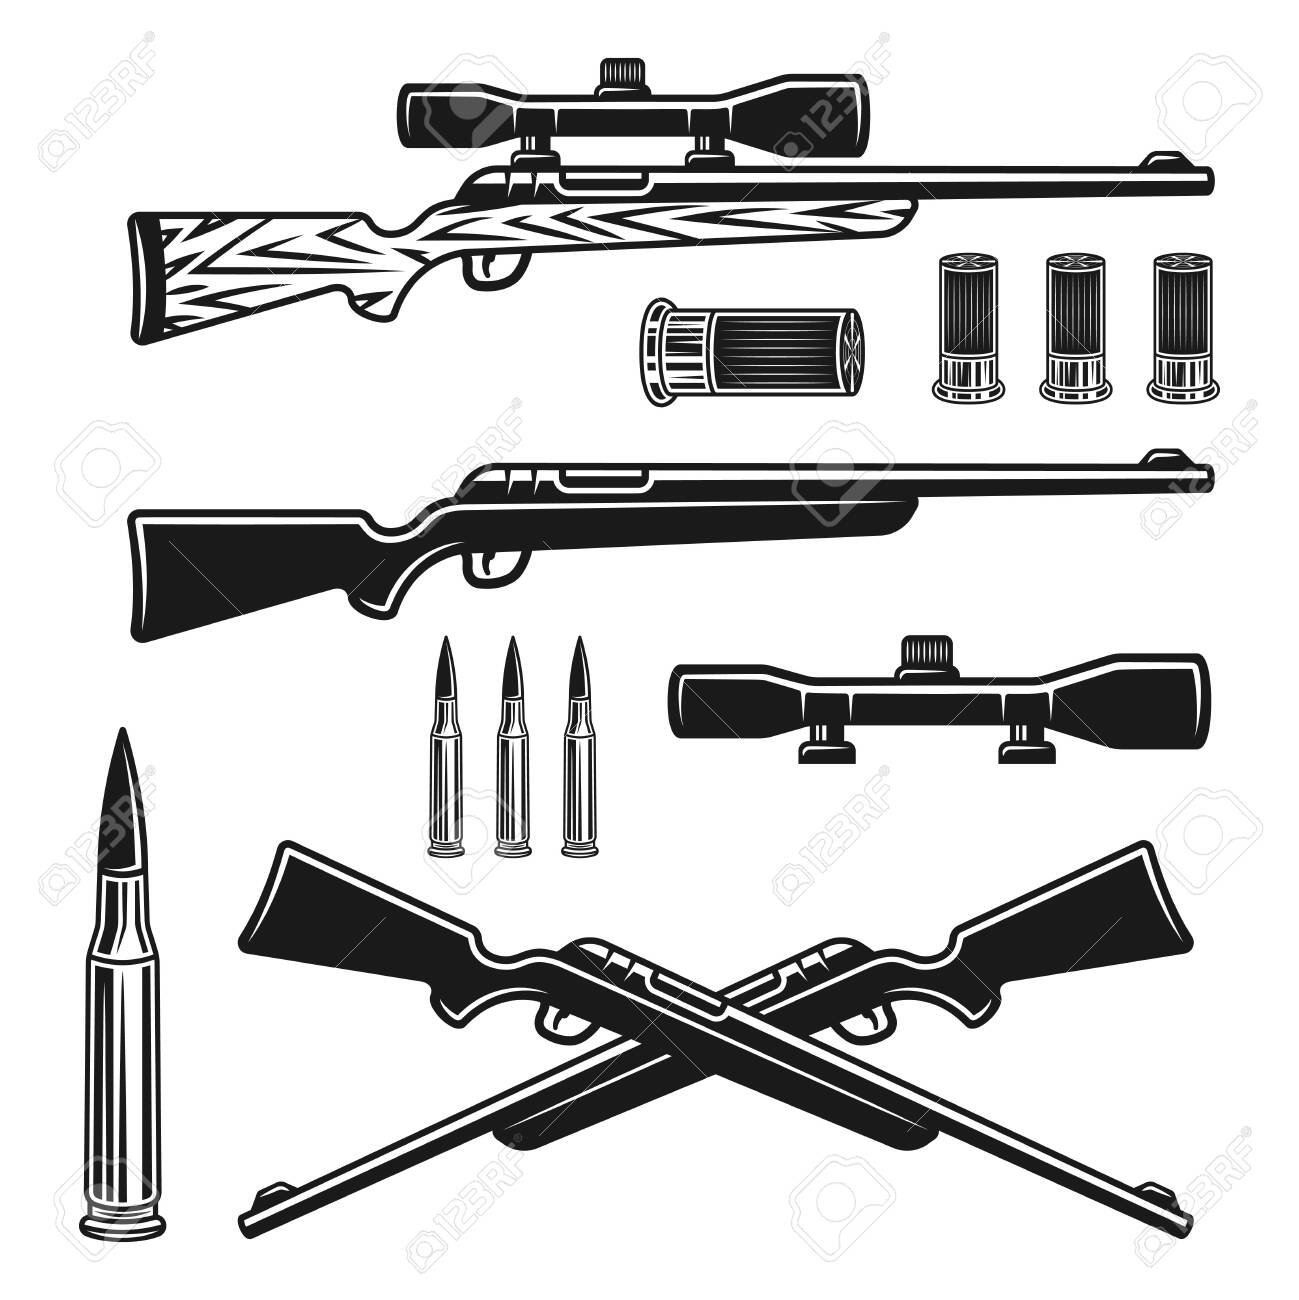 Hunting weapons set of vector objects or design elements in monochrome vintage style isolated on white background - 145120844